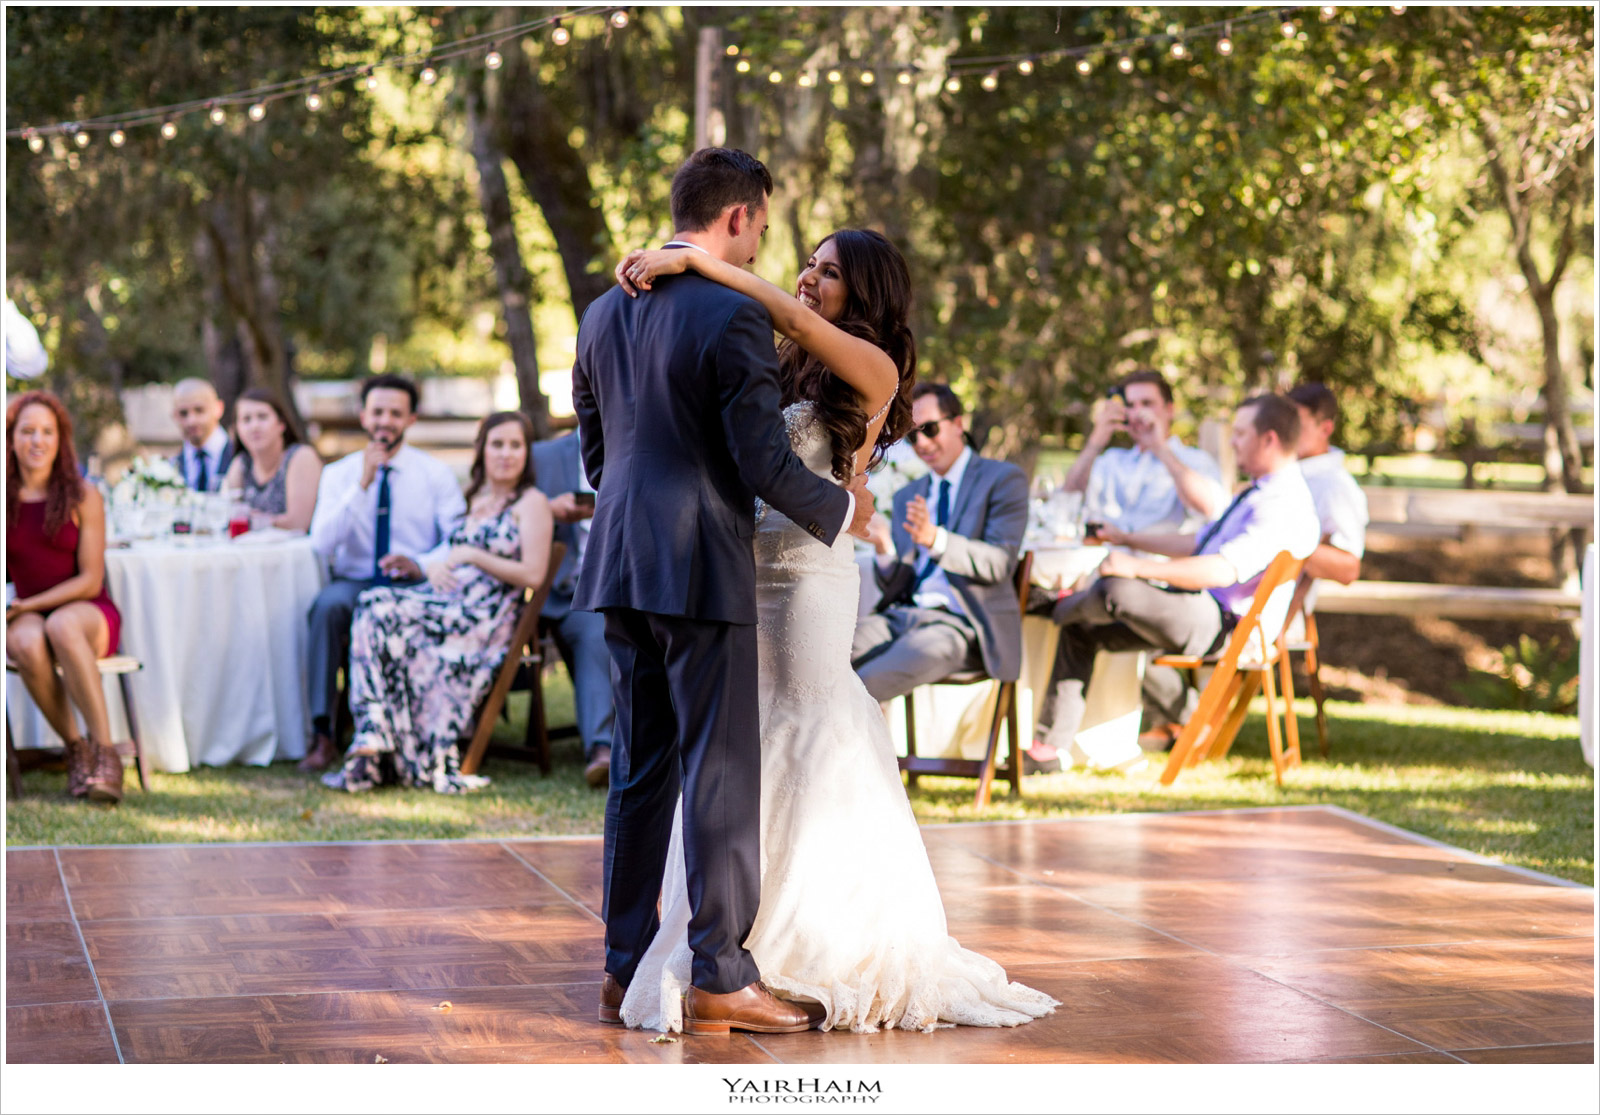 Destination-wedding-photographer-Yair-Haim-43